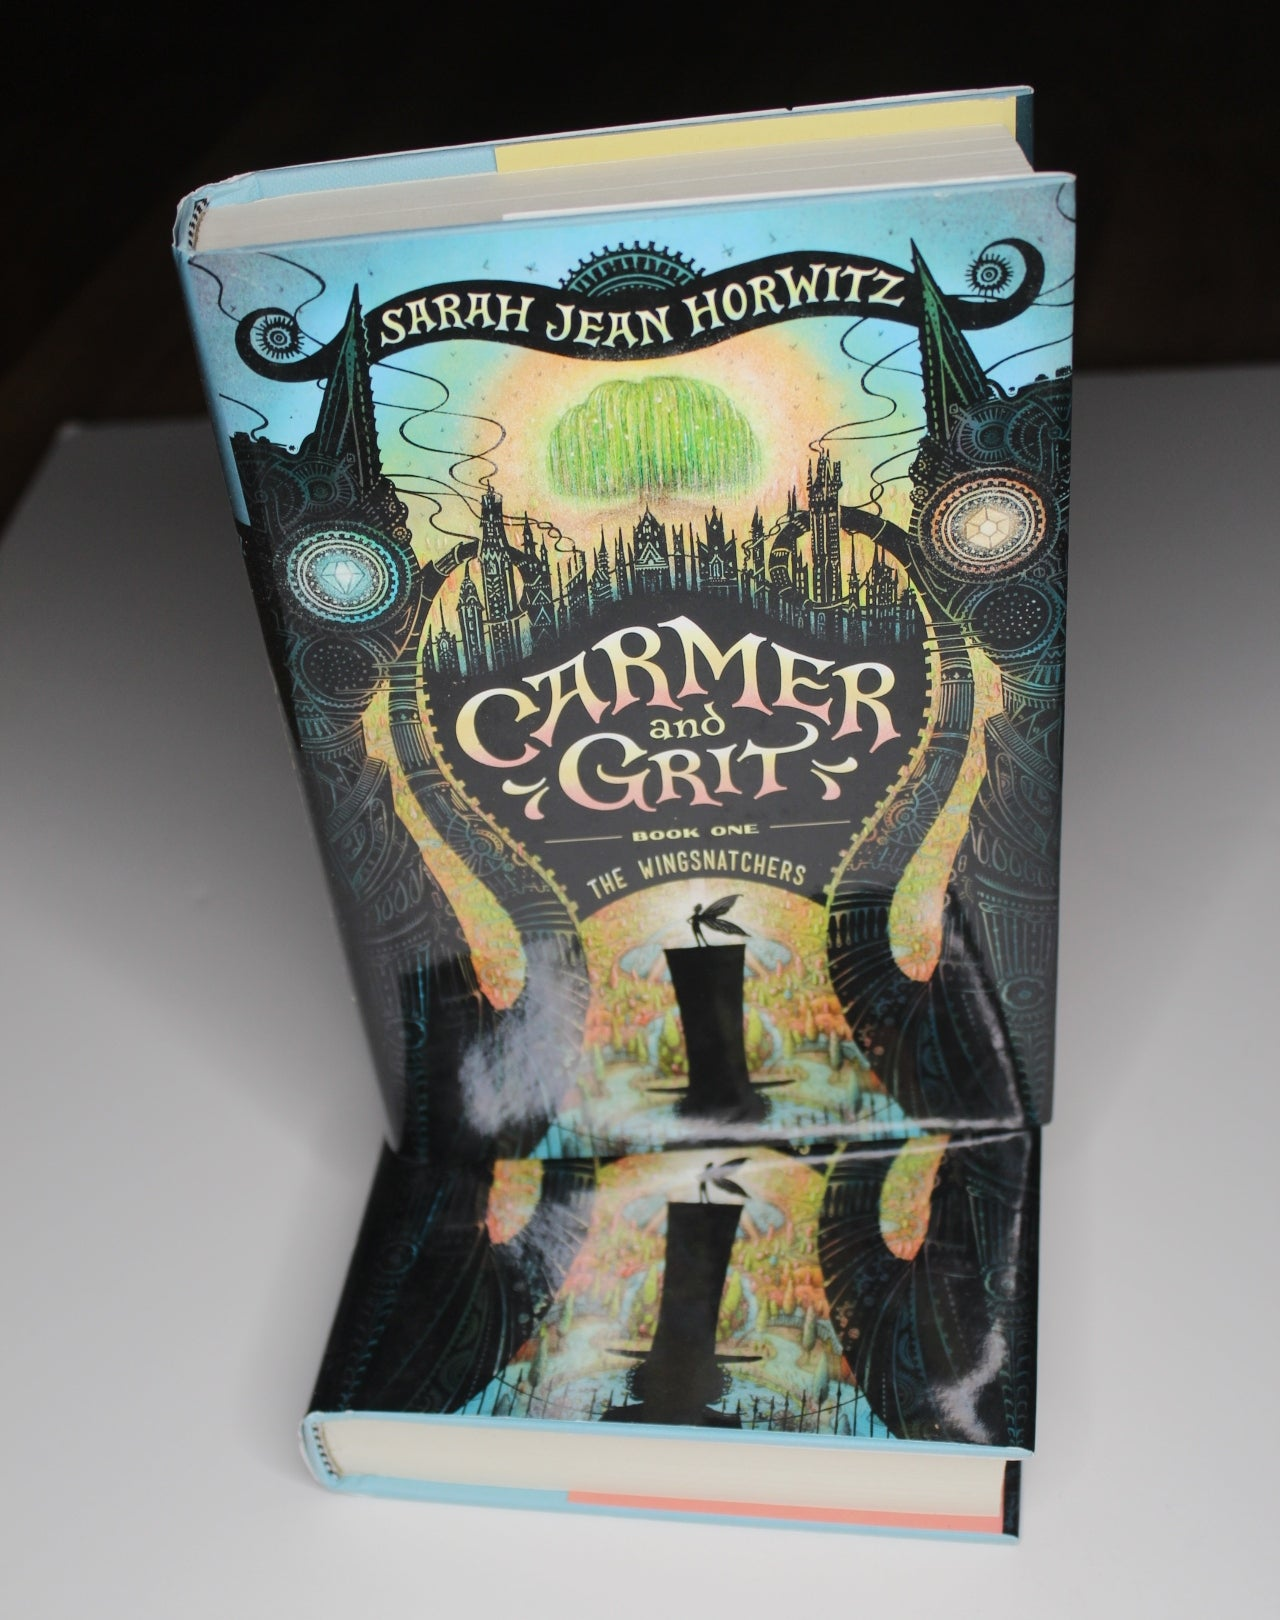 Carmer and Grit (Book One: The Wingsnatchers), by Sarah Jean Horowitz